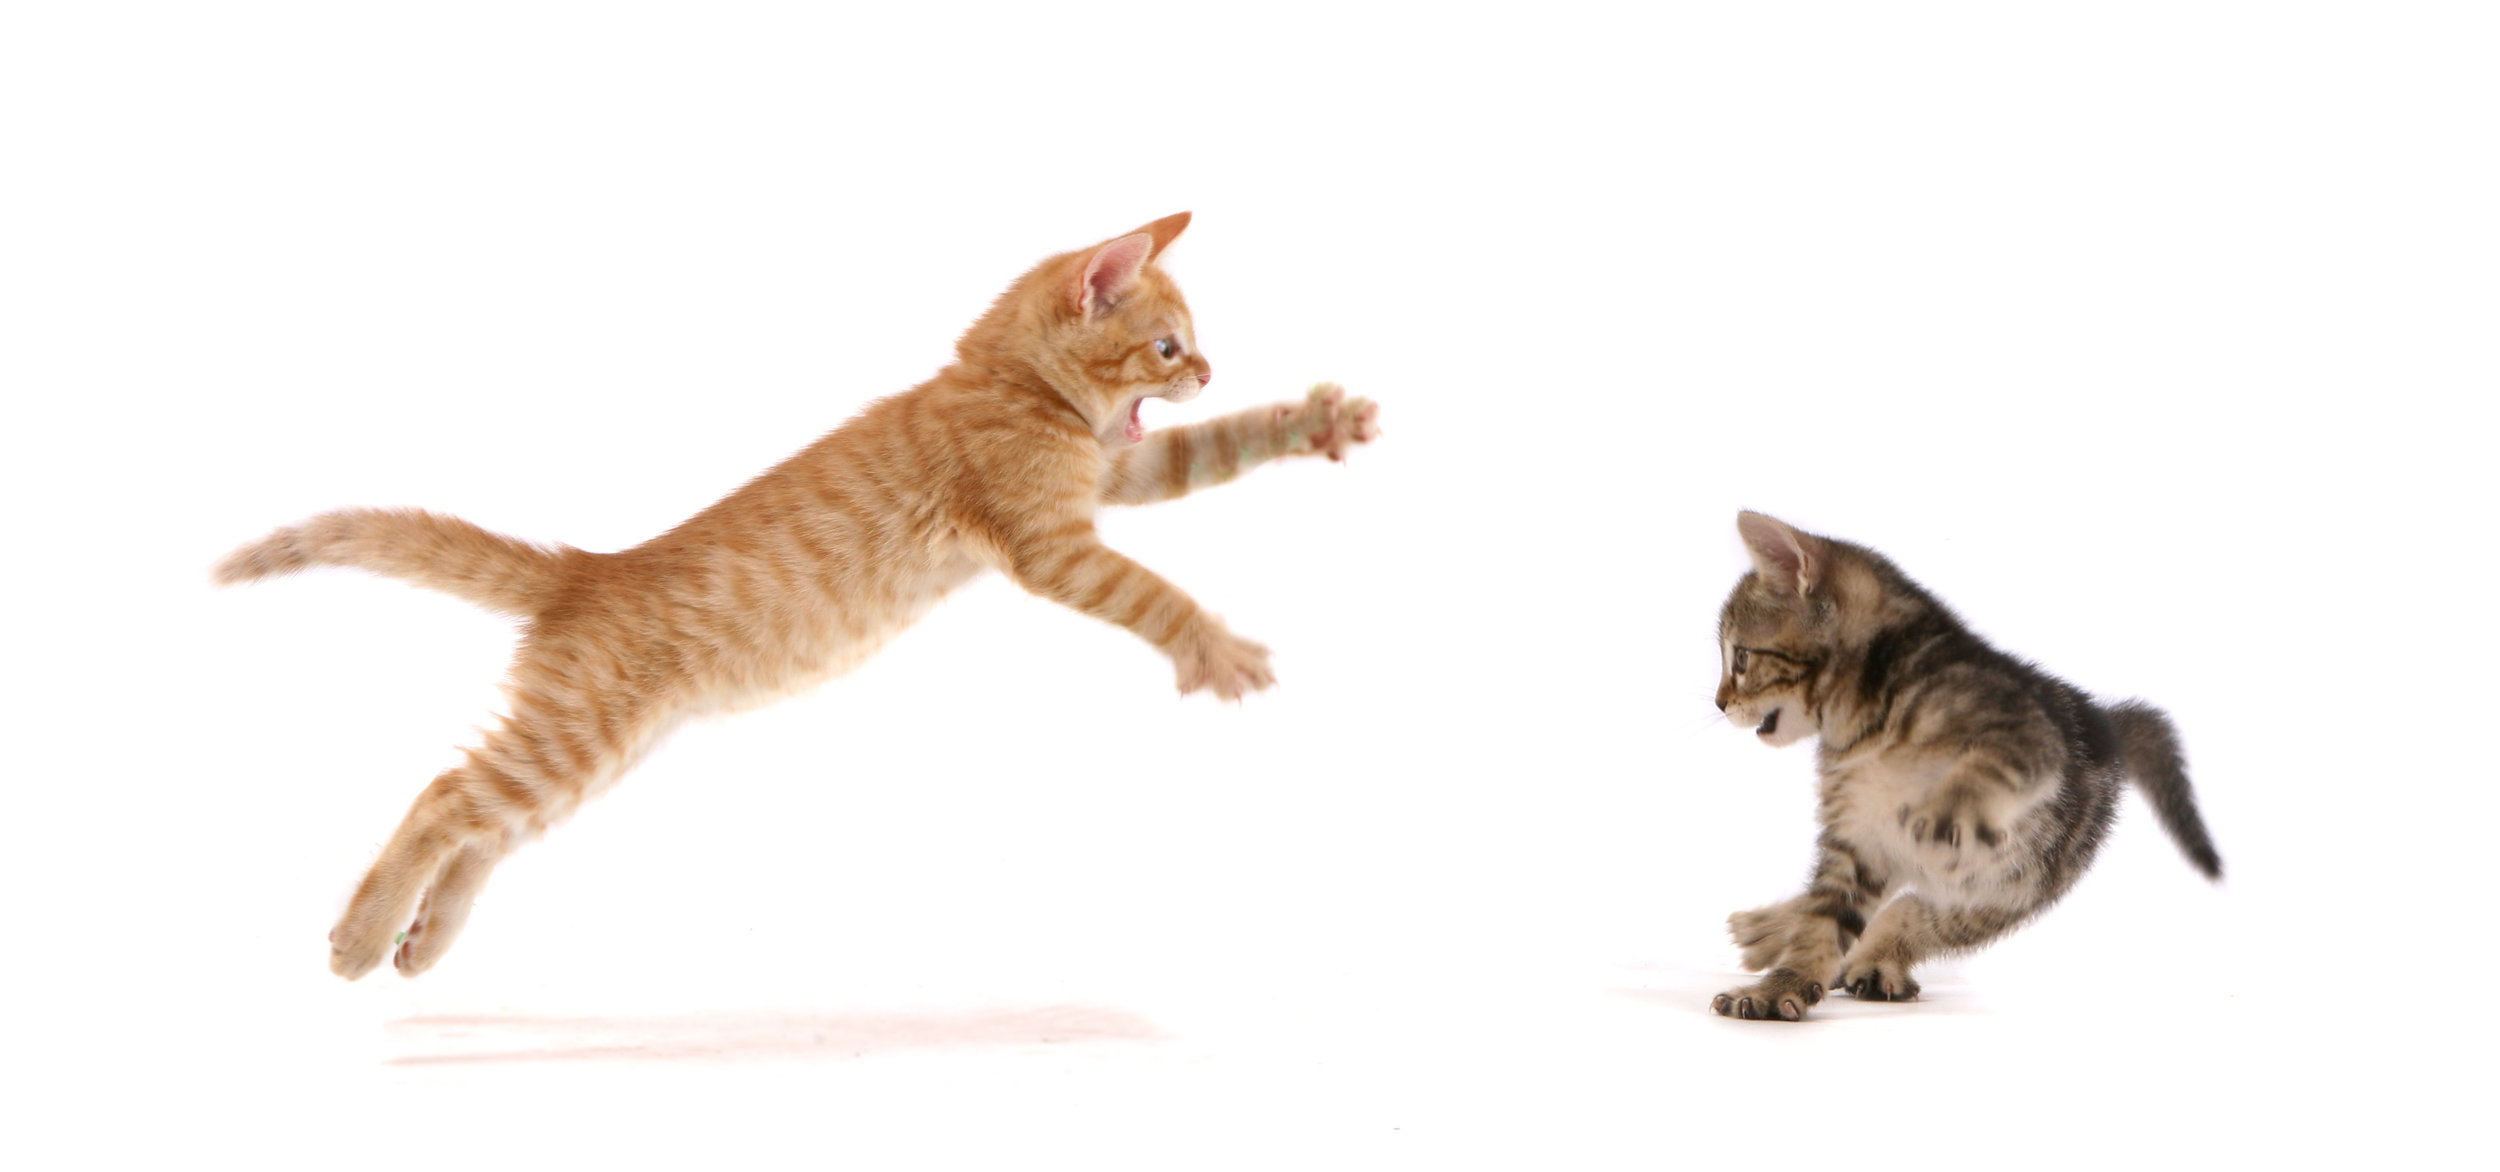 cats fight stop kittens play.jpg